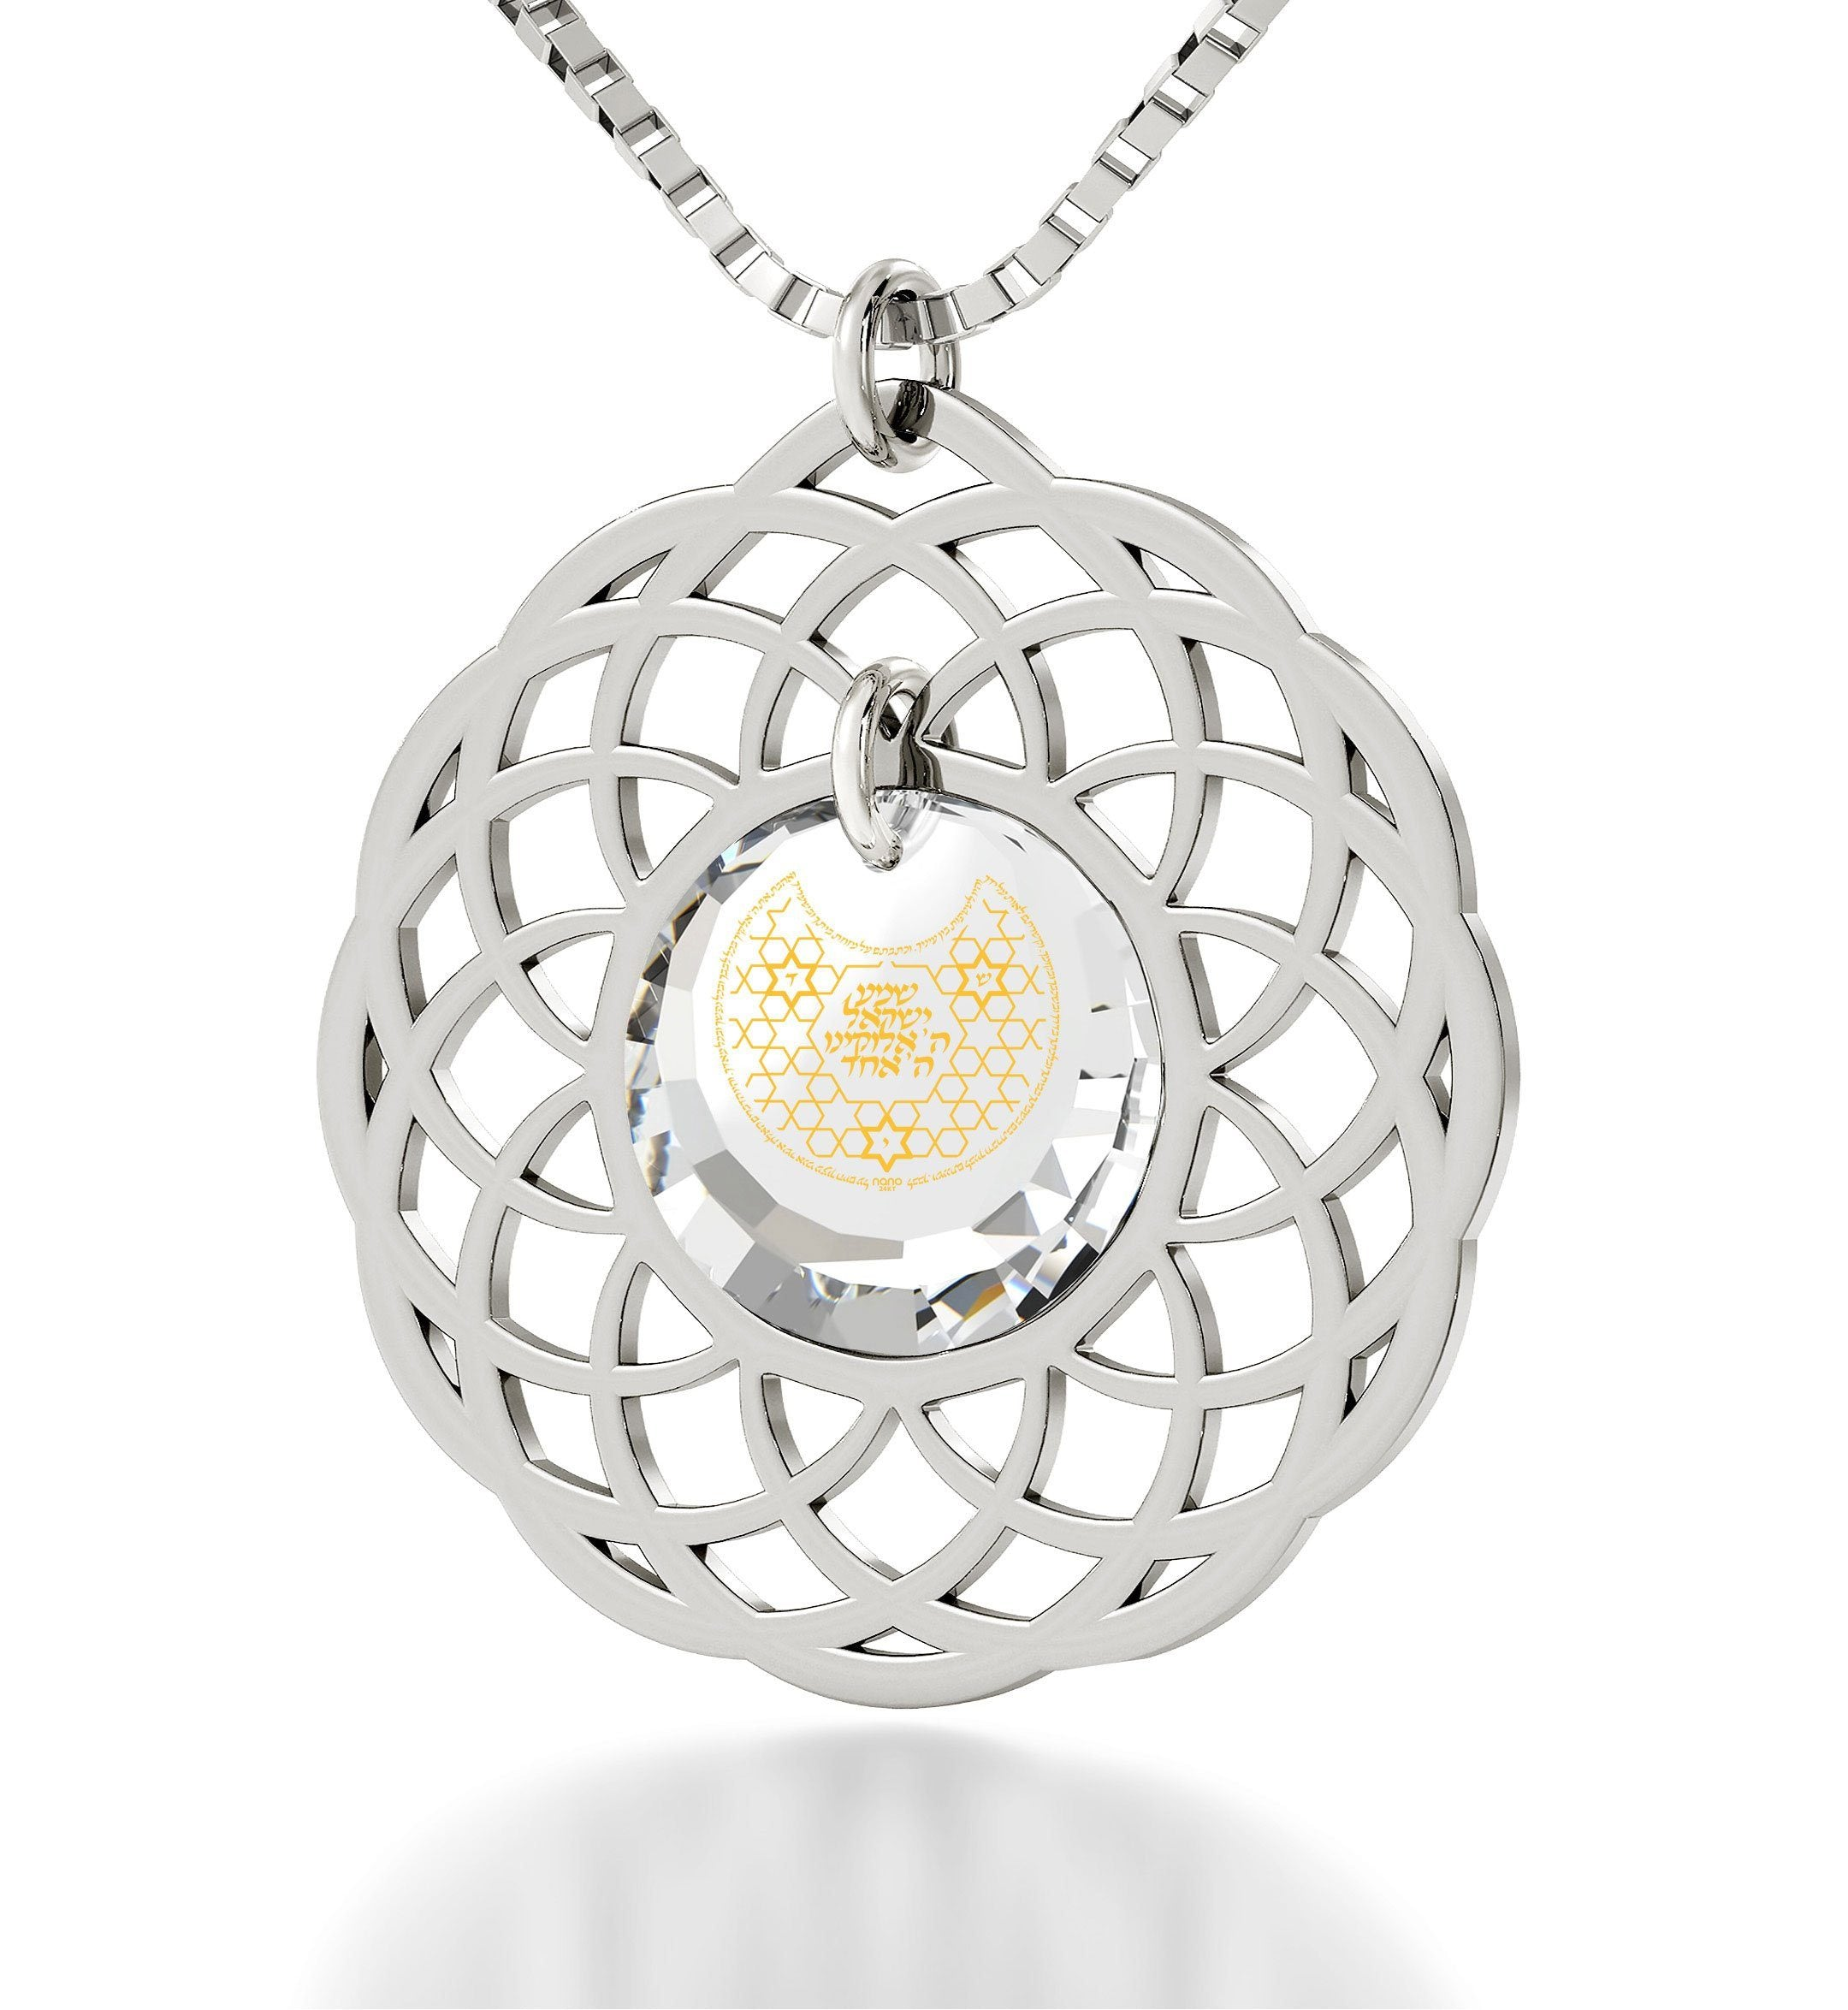 "Mandala Necklace with ""Shema Yisrael"" Engraved in 24k, Judaica Jewelry with Swarovski Crystal Stone, Jewish Charms, Nano Jewelry"